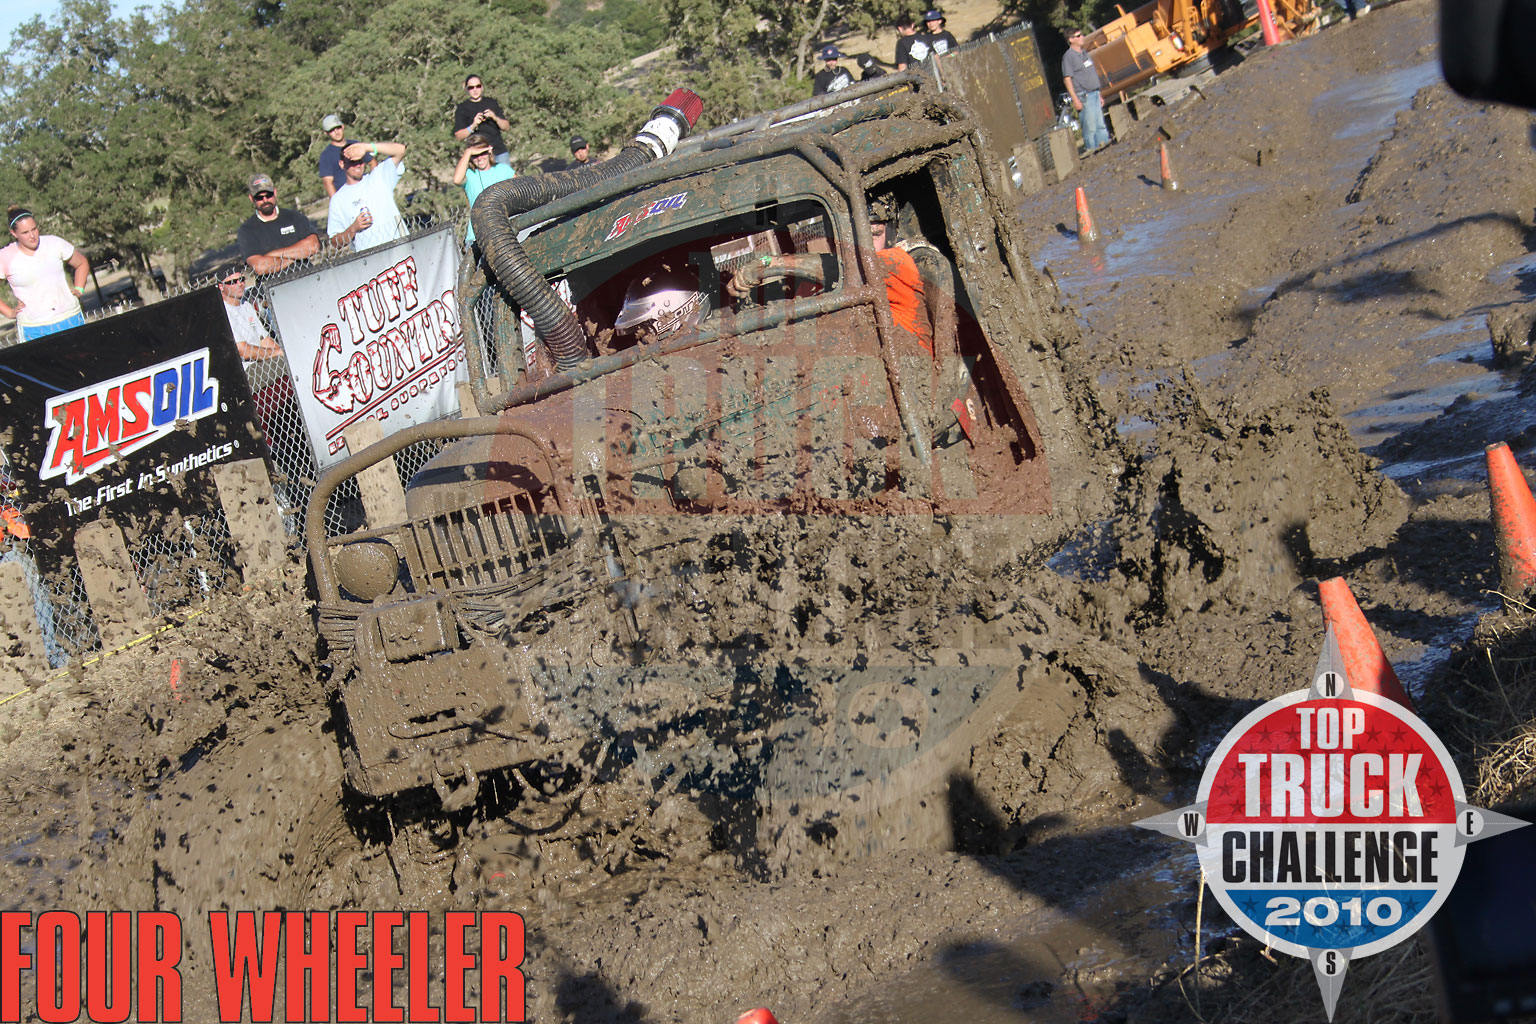 2010 Top Truck Challenge Mud Pit Roger King 1964 Dodge Wm300 Power Wagon